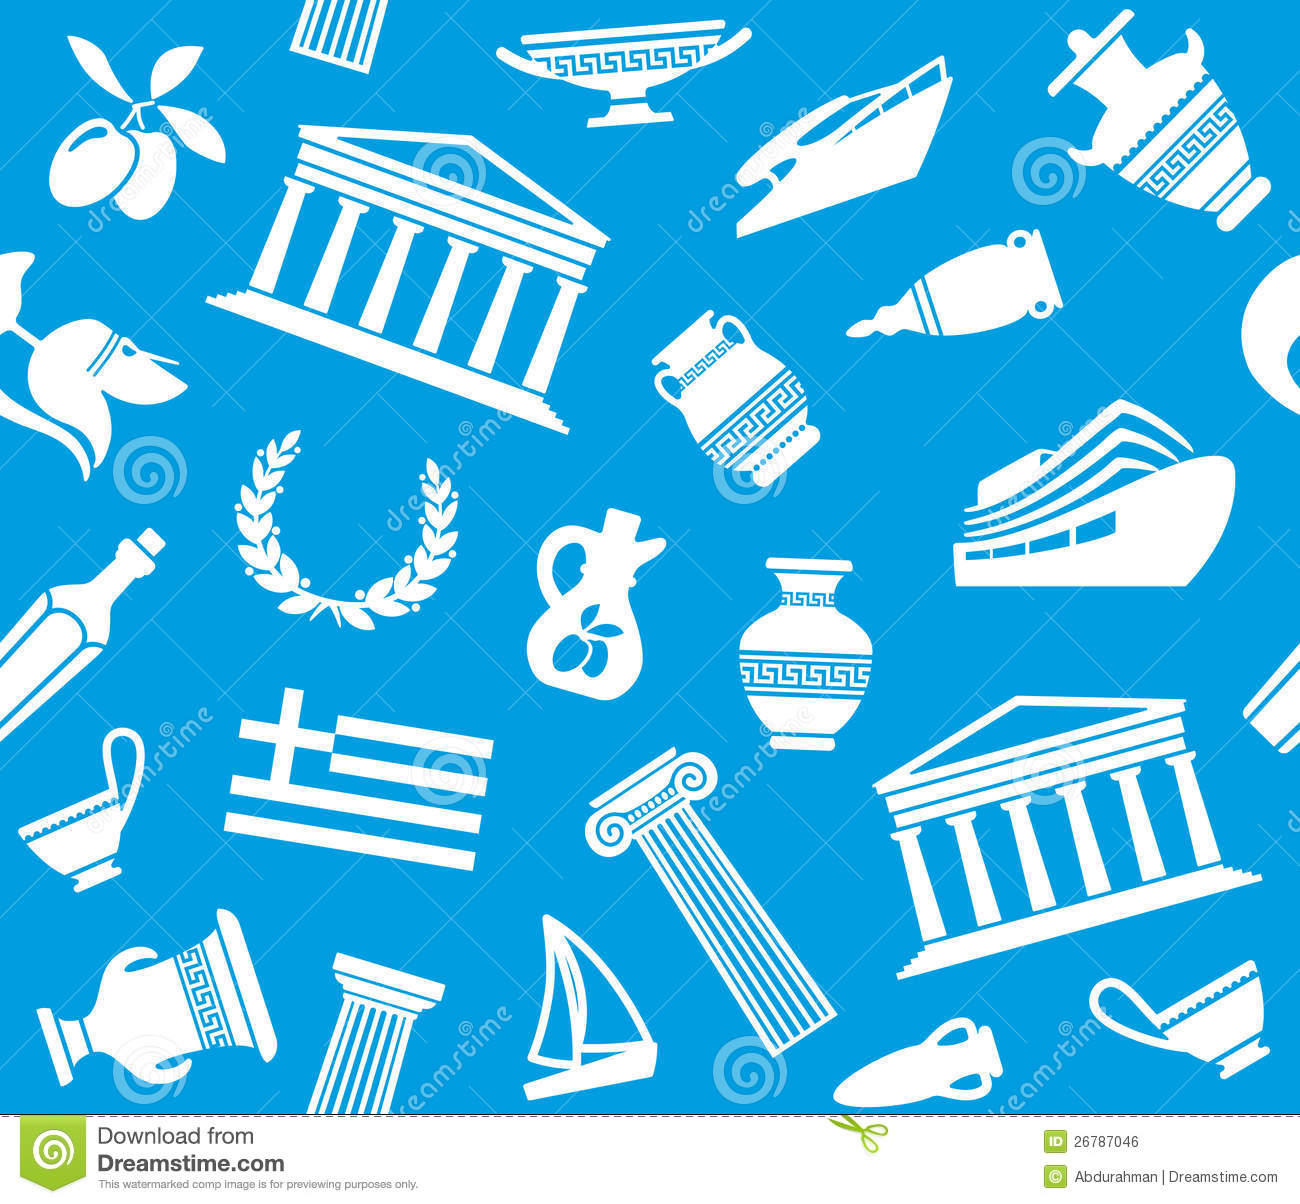 Background With Symbols Of Greece Royalty Free Stock Image - Image ...: www.dreamstime.com/royalty-free-stock-image-background-symbols...